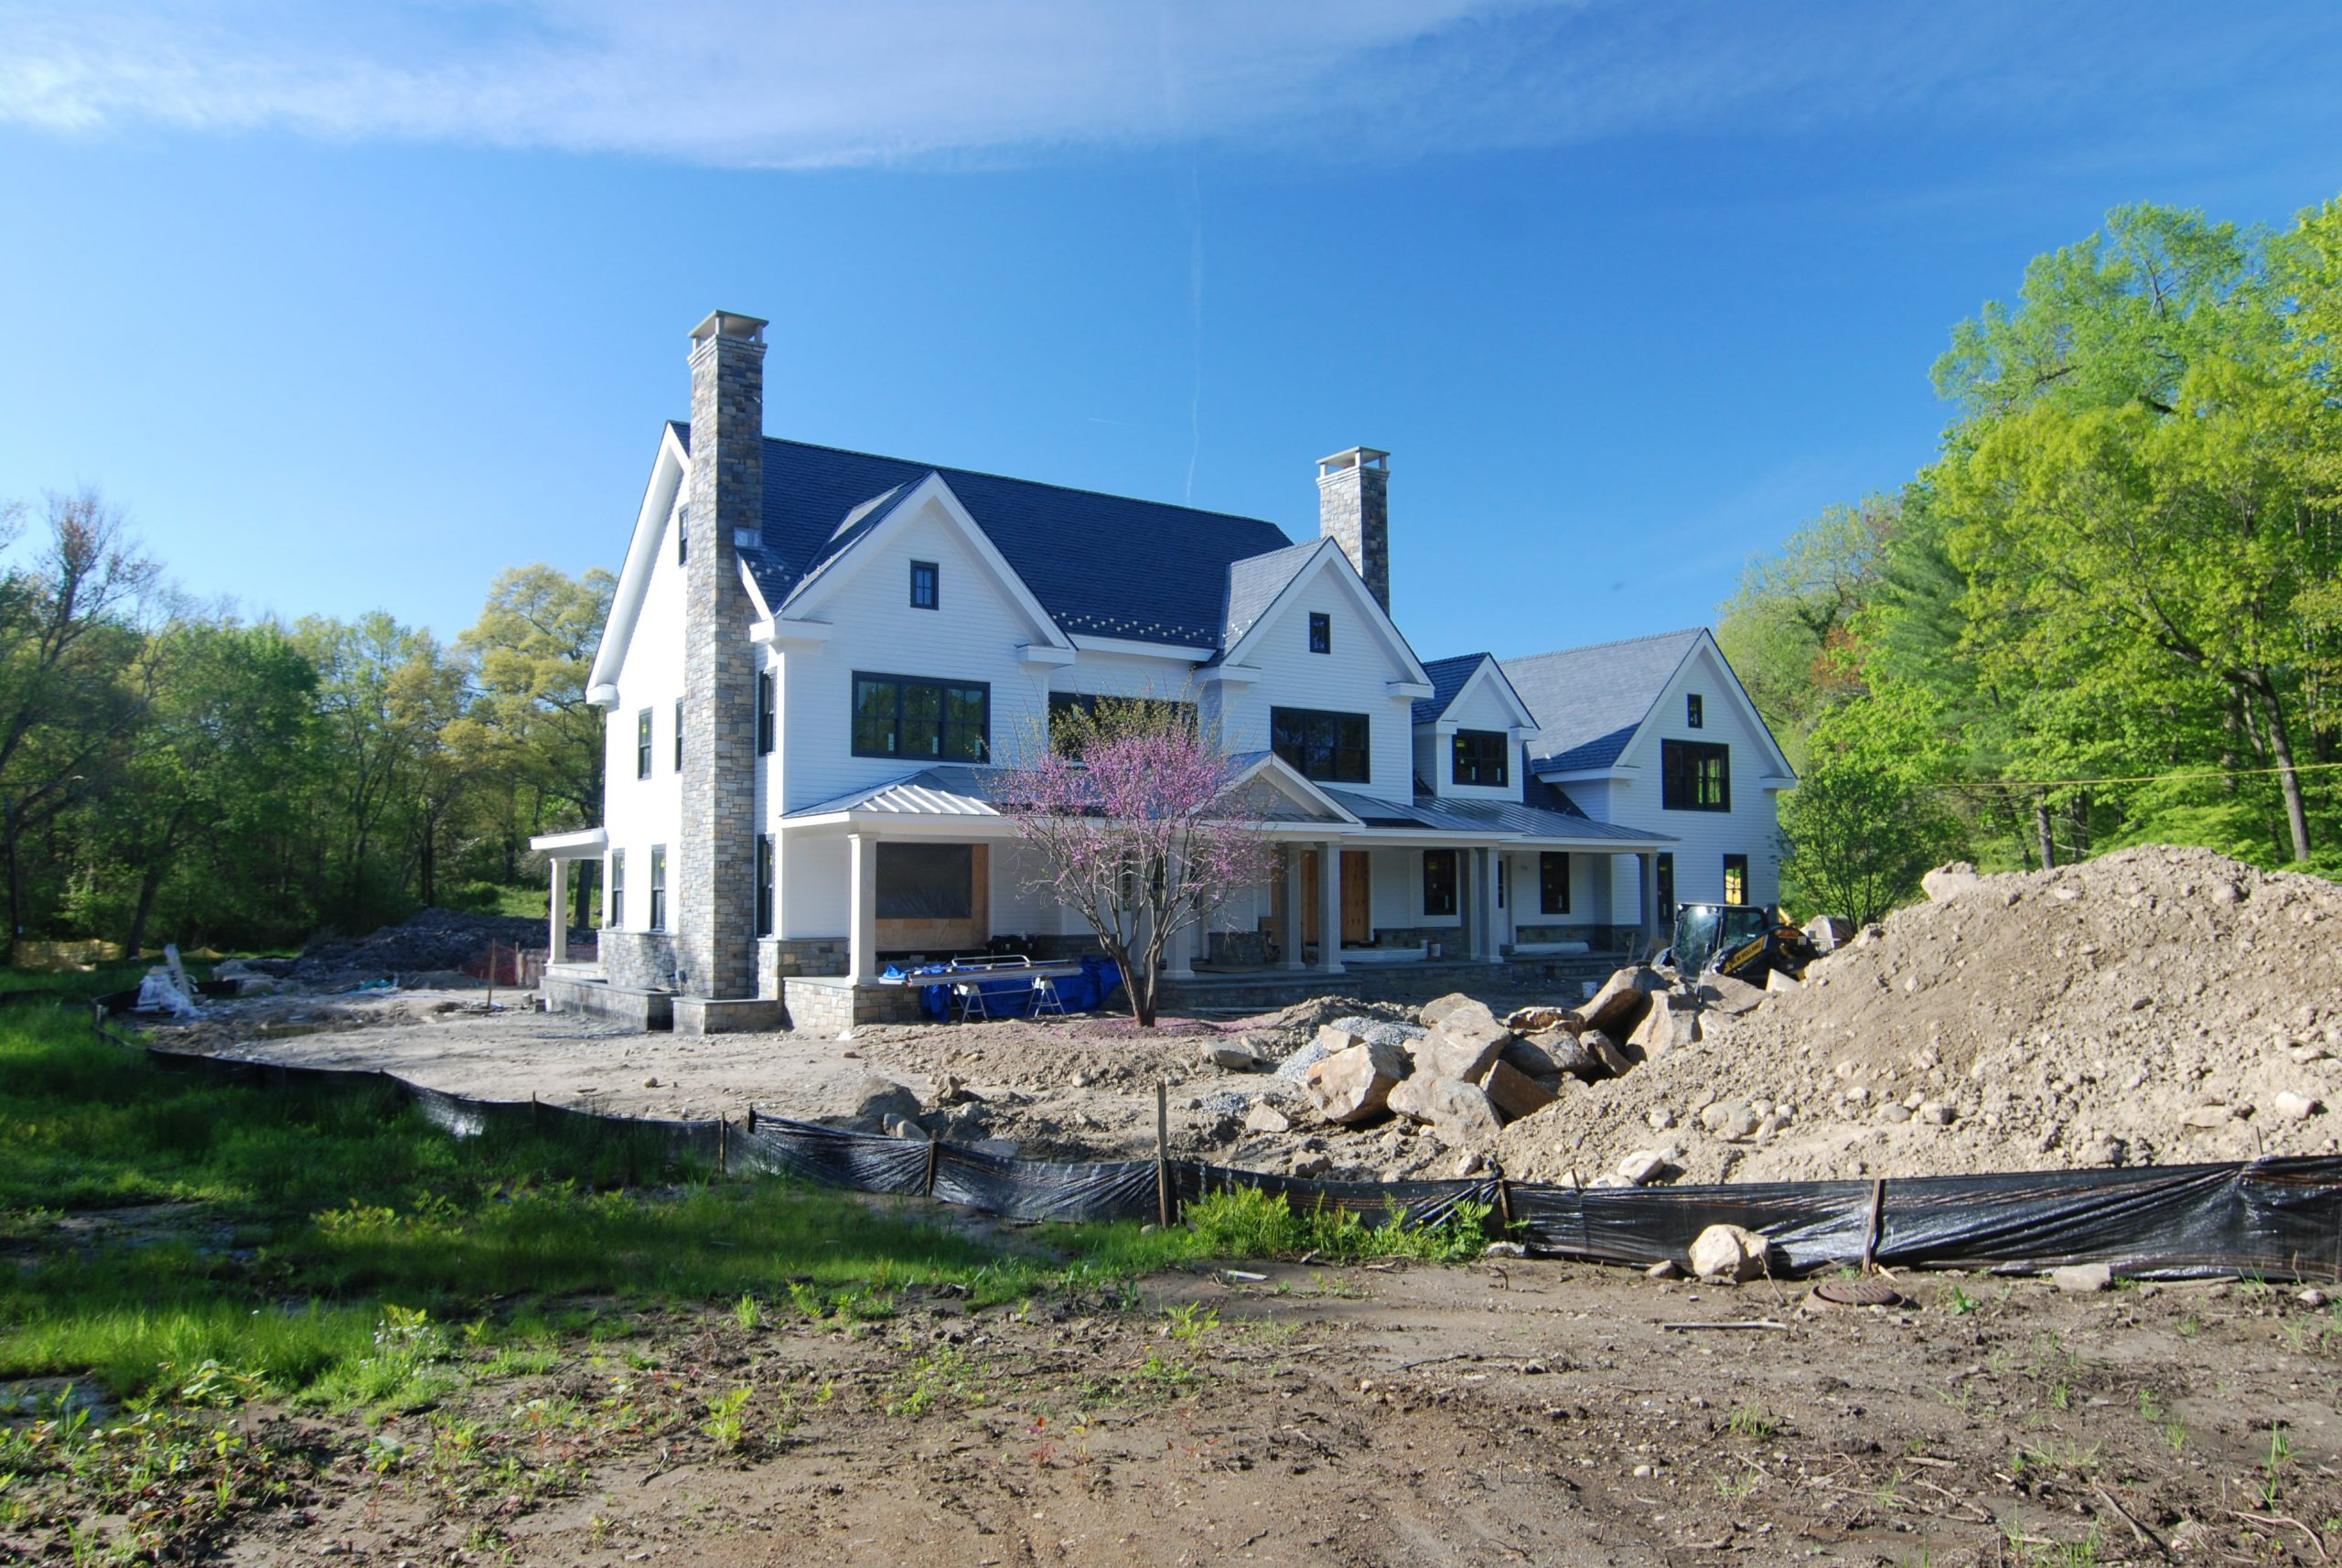 6 greenwich home construction in progress